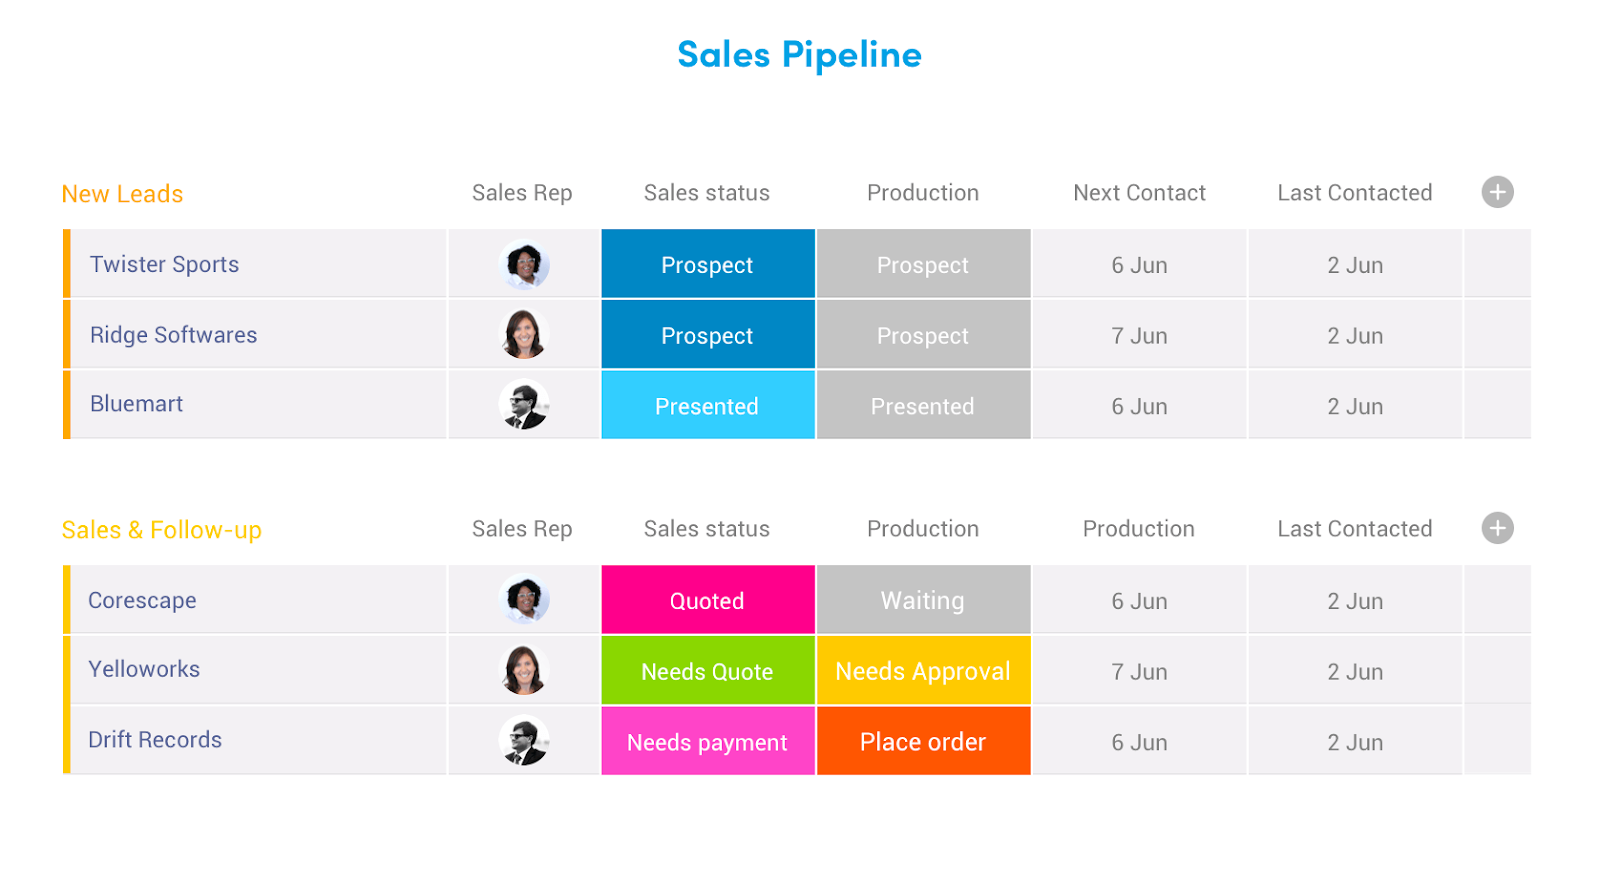 Monday Sales Pipeline